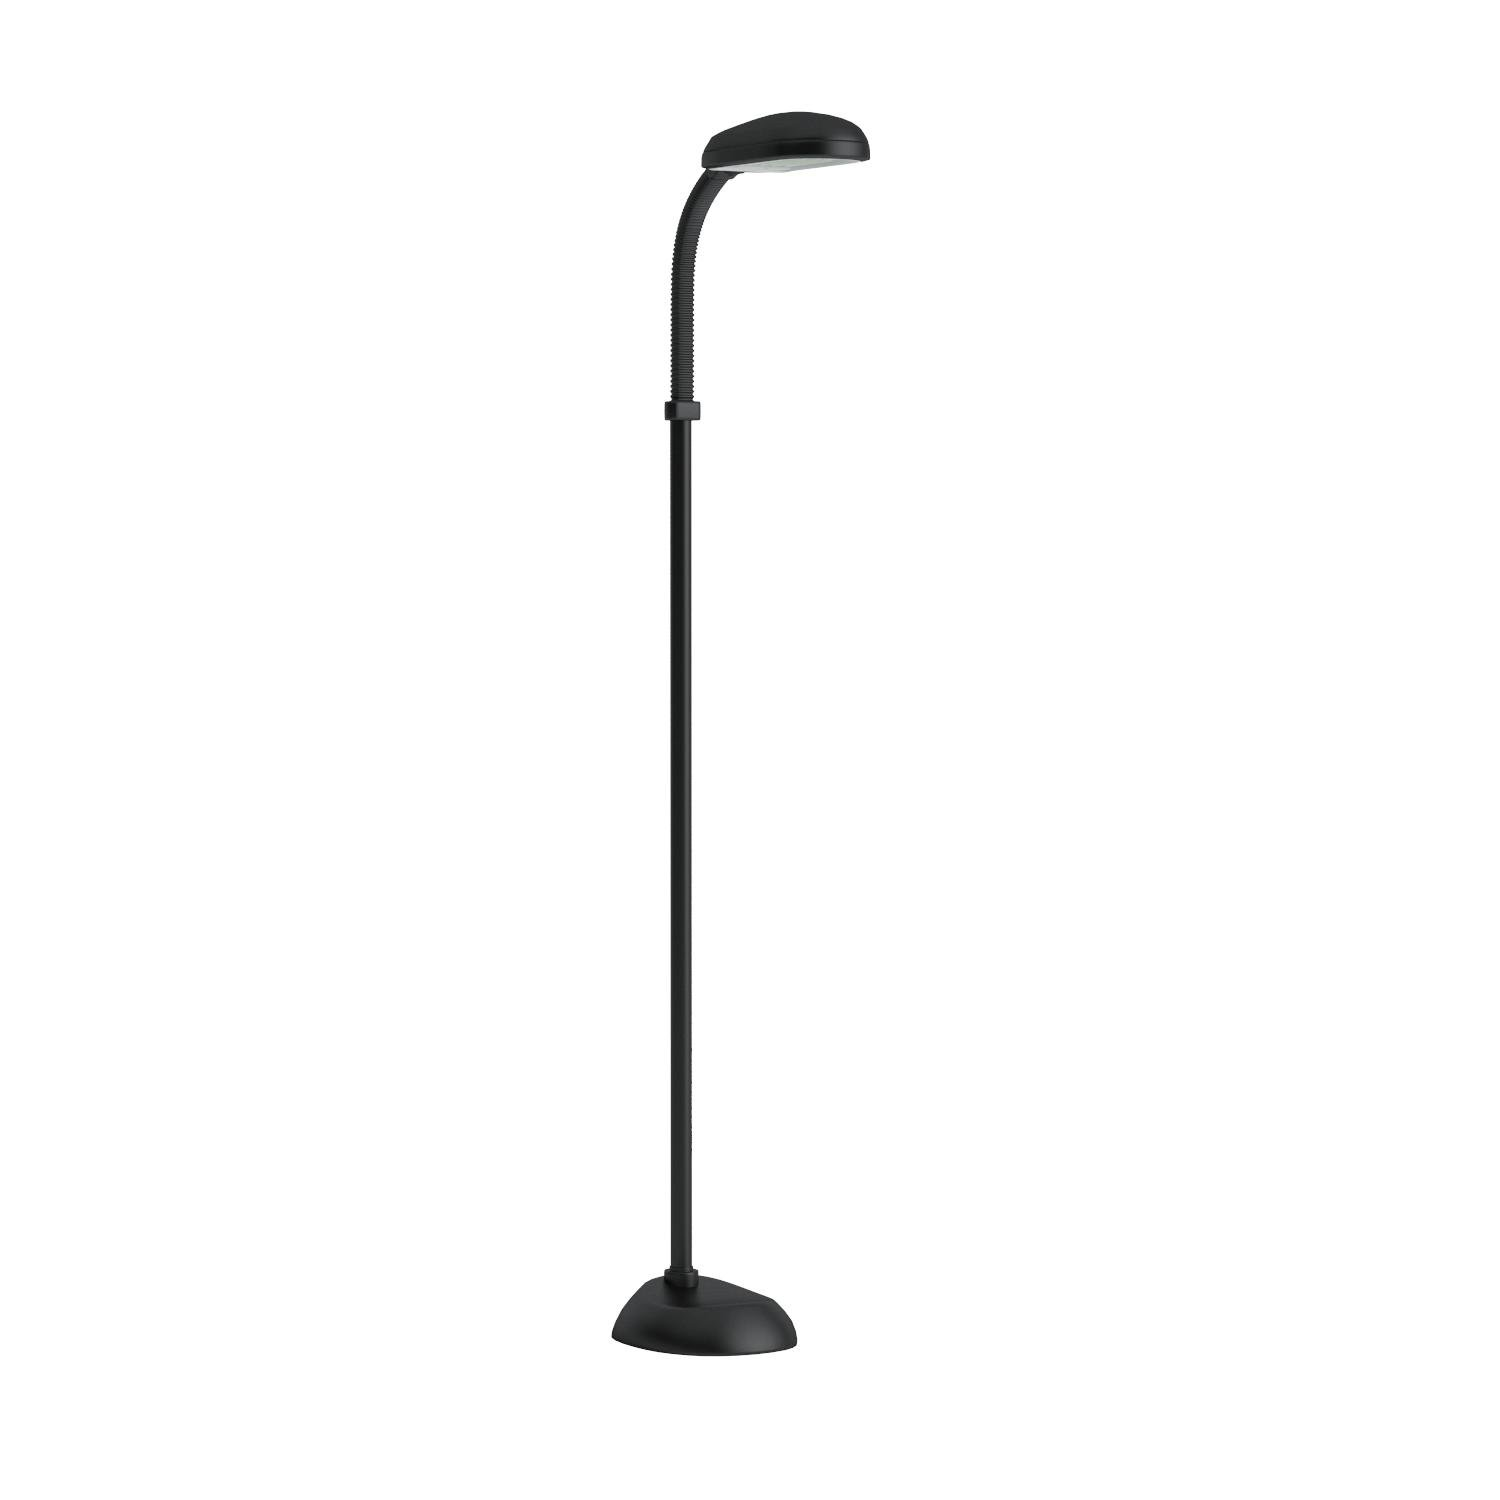 Lavish Home (72-0890) 5 Feet Sunlight Floor Lamp With Adjustable Gooseneck - Black by Lavish Home (Image #7)